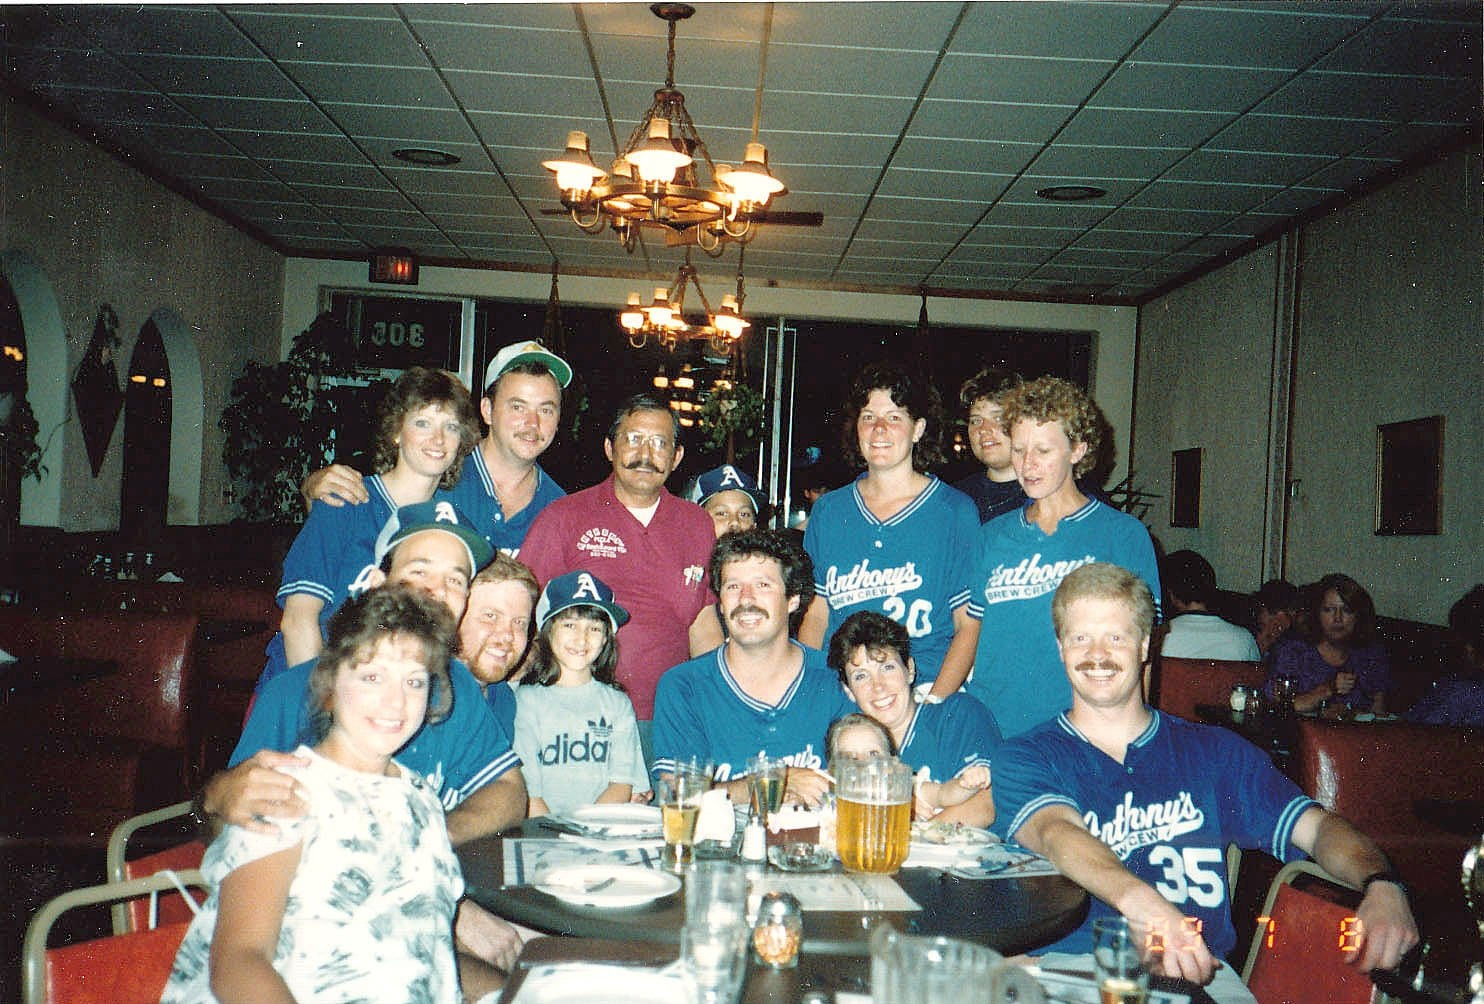 Anthony's was the home to many sports league parties during their 41 years. (Courtesy photo)